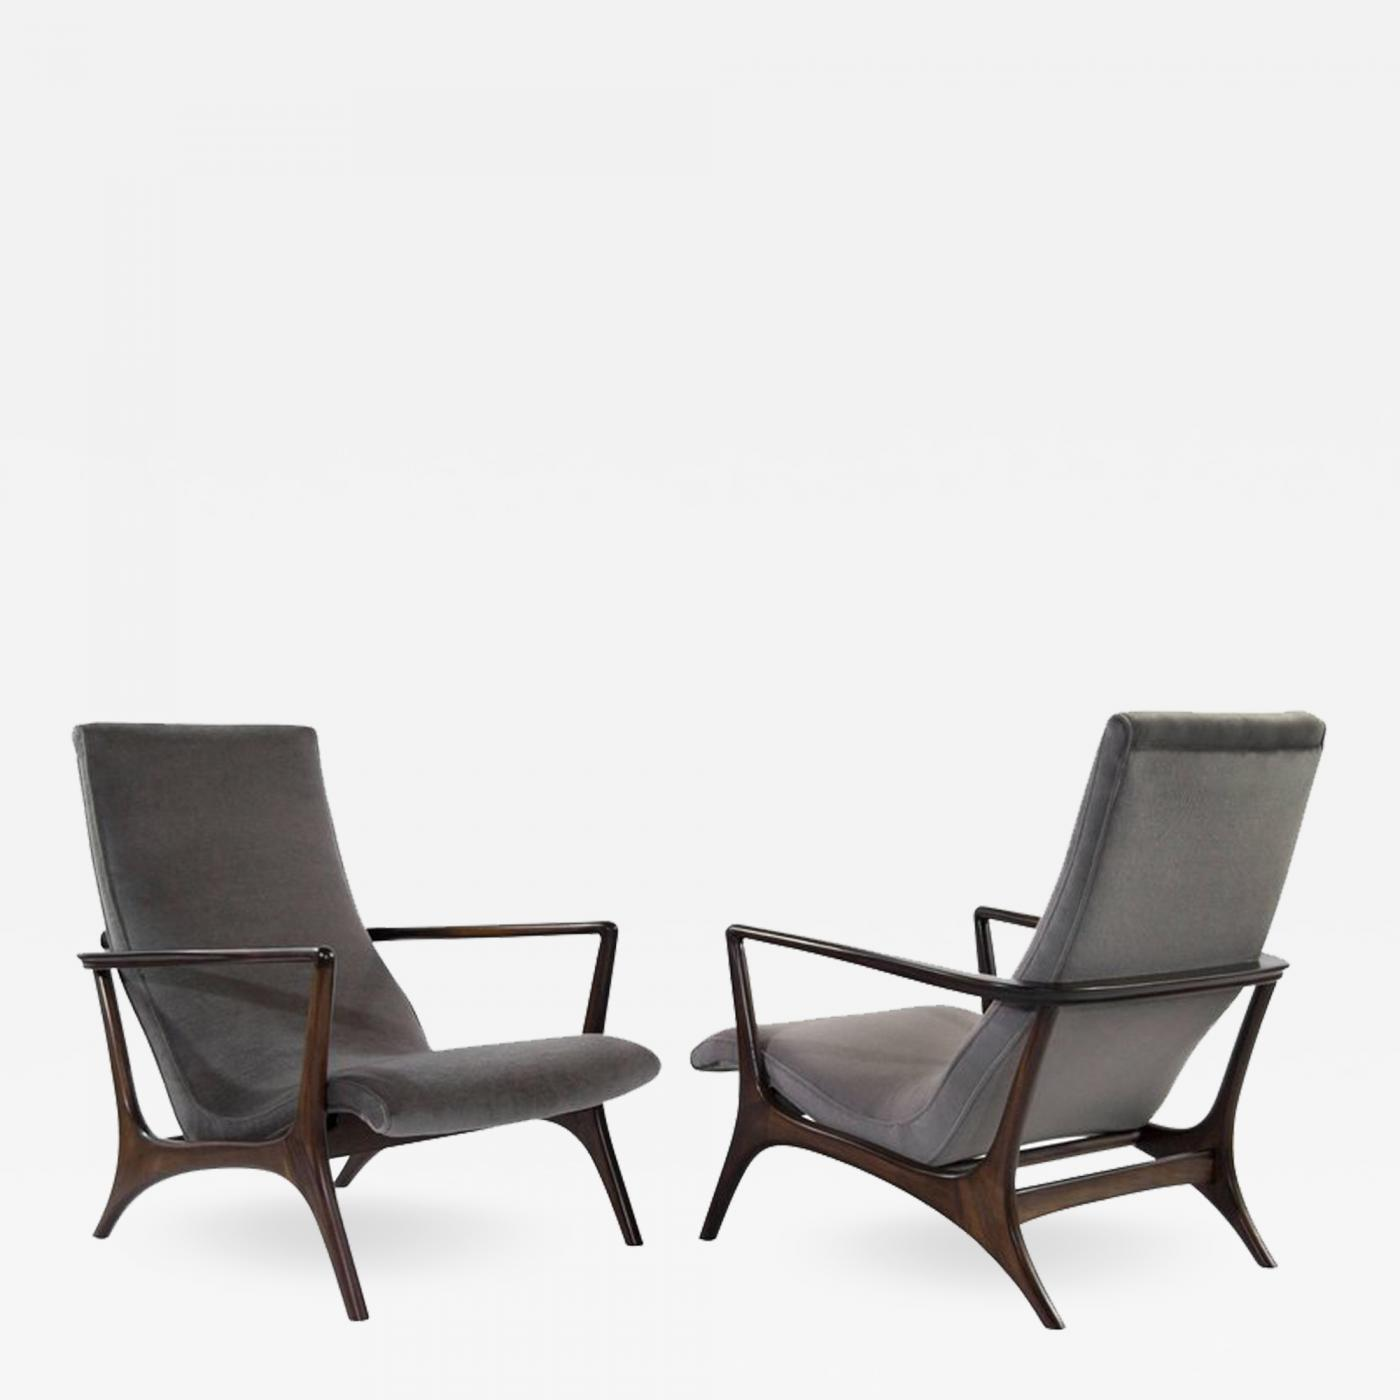 vladimir kagan contour lounge chairs by vladimir kagan